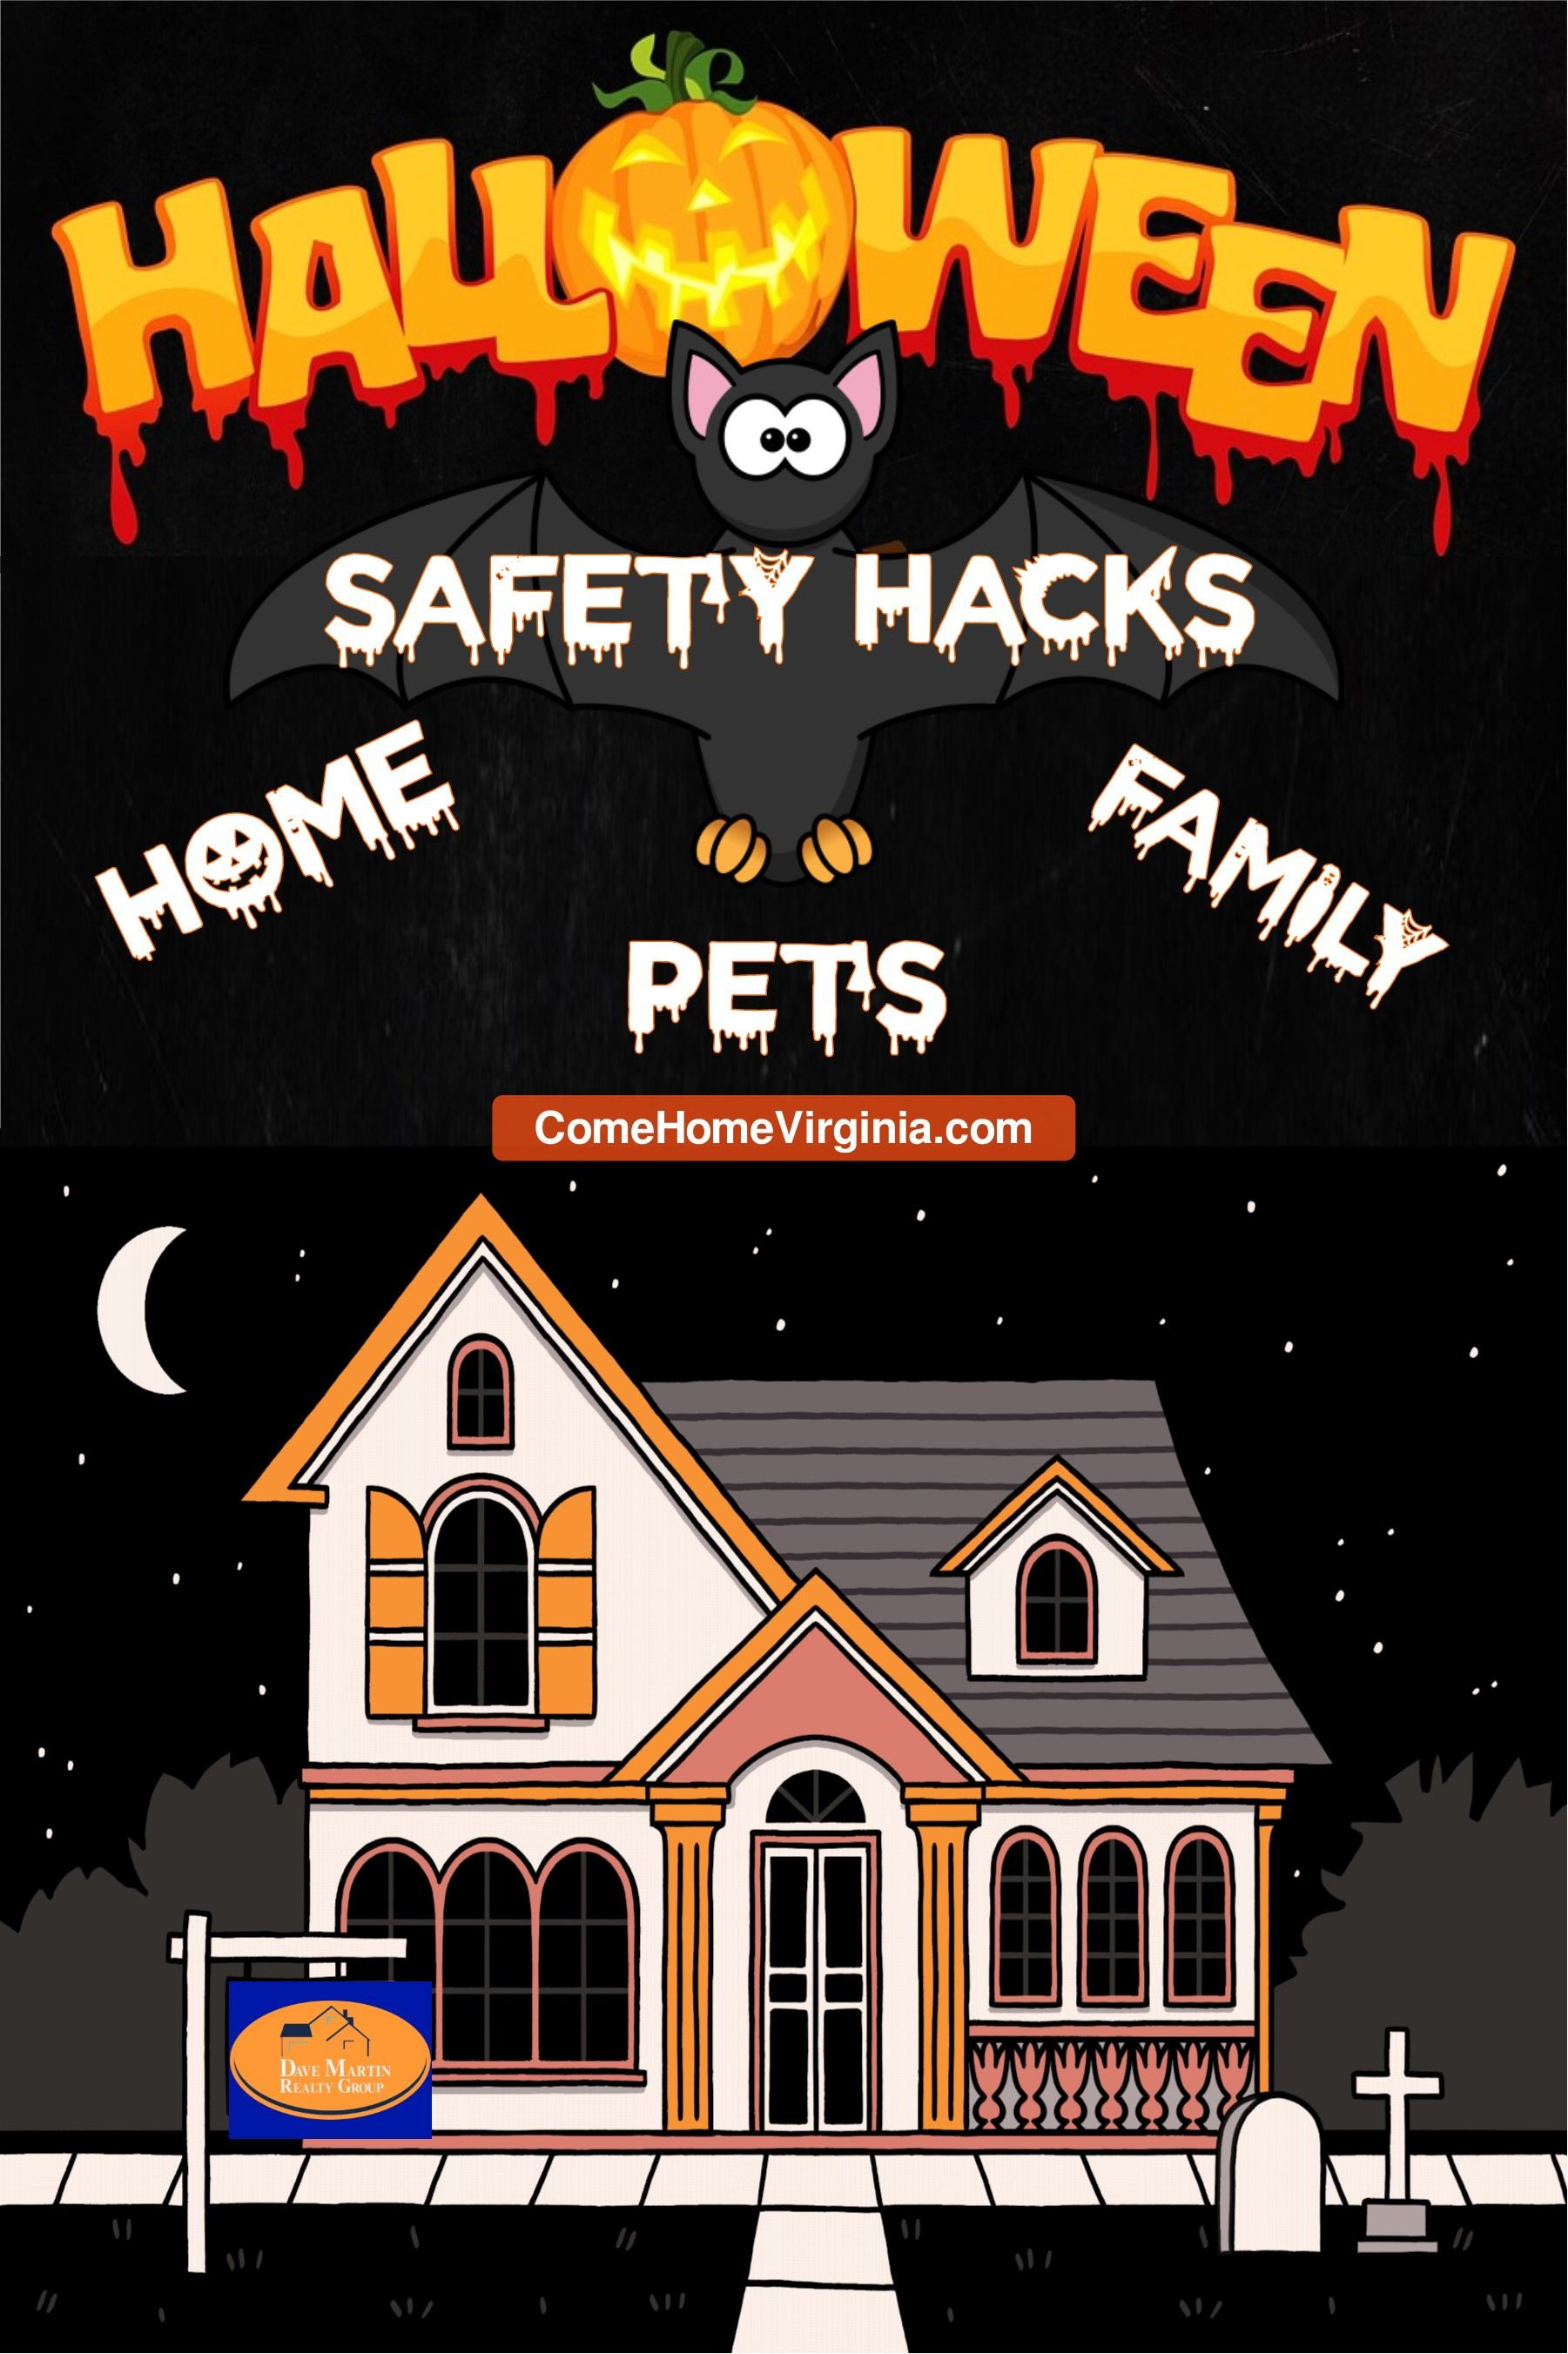 Keep your home, family, kids and pets safe and happy this